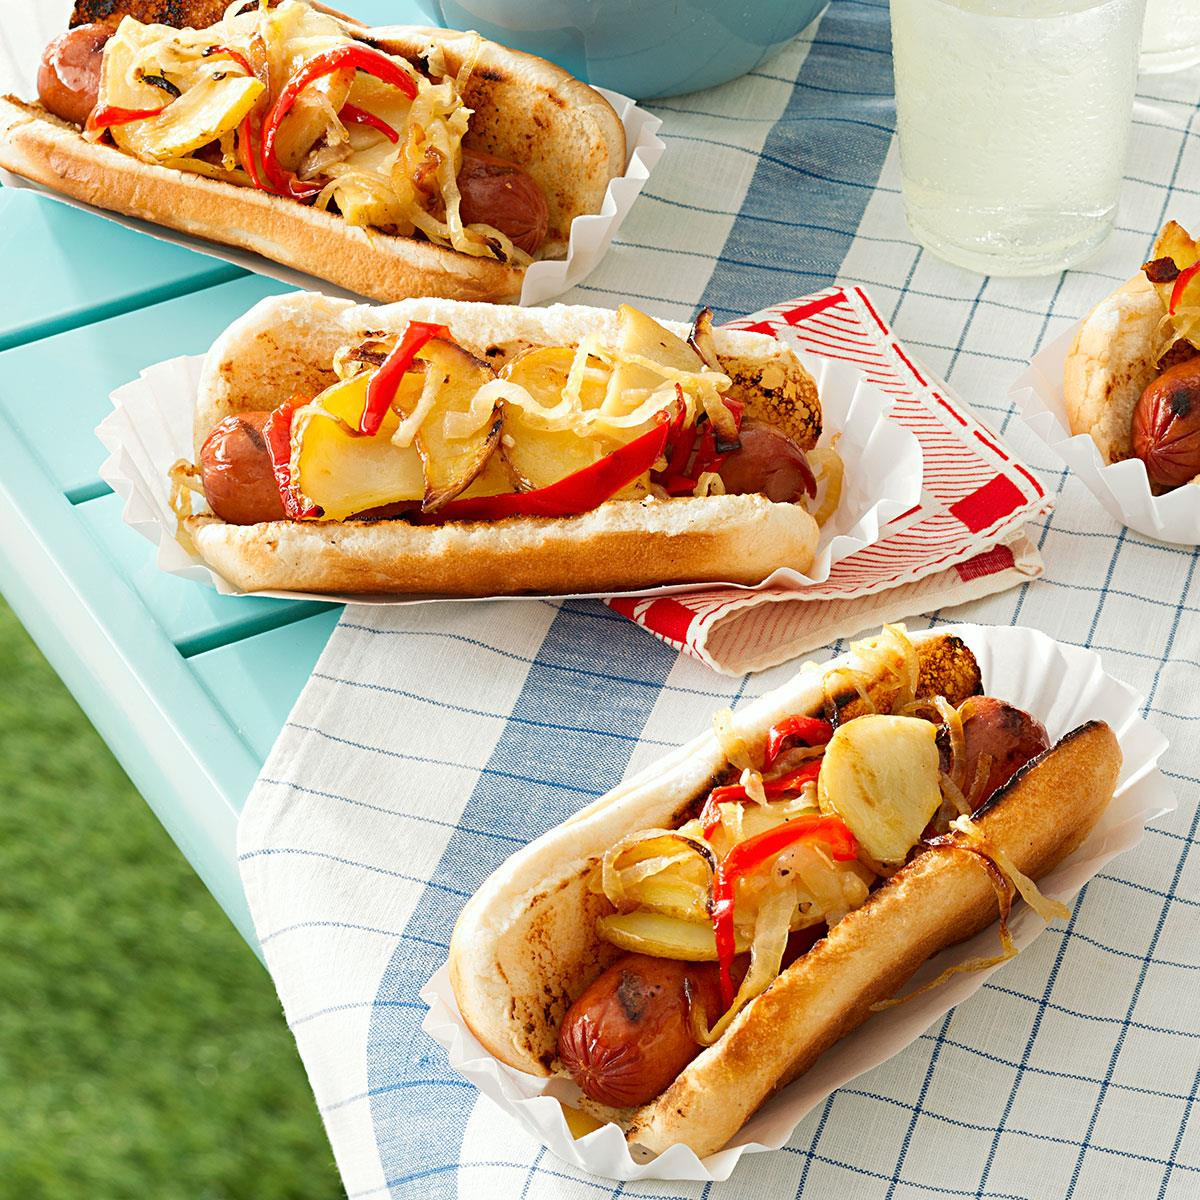 45 Easy Camping Recipes: Jersey-Style Hot Dogs Recipe